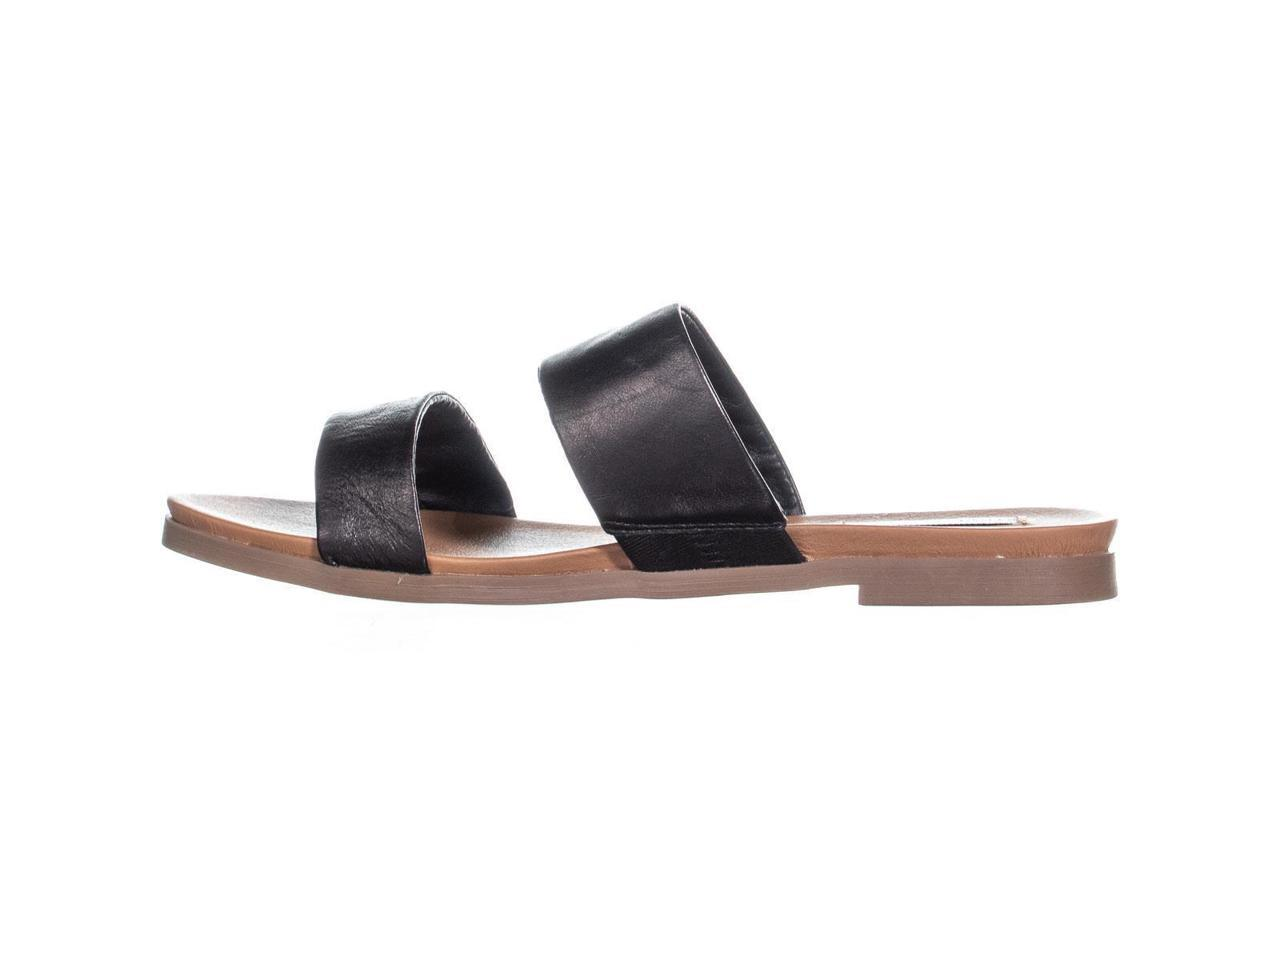 df5b6119cc0 Steve Madden Womens Judy Leather Open Toe Casual Slide Sandals